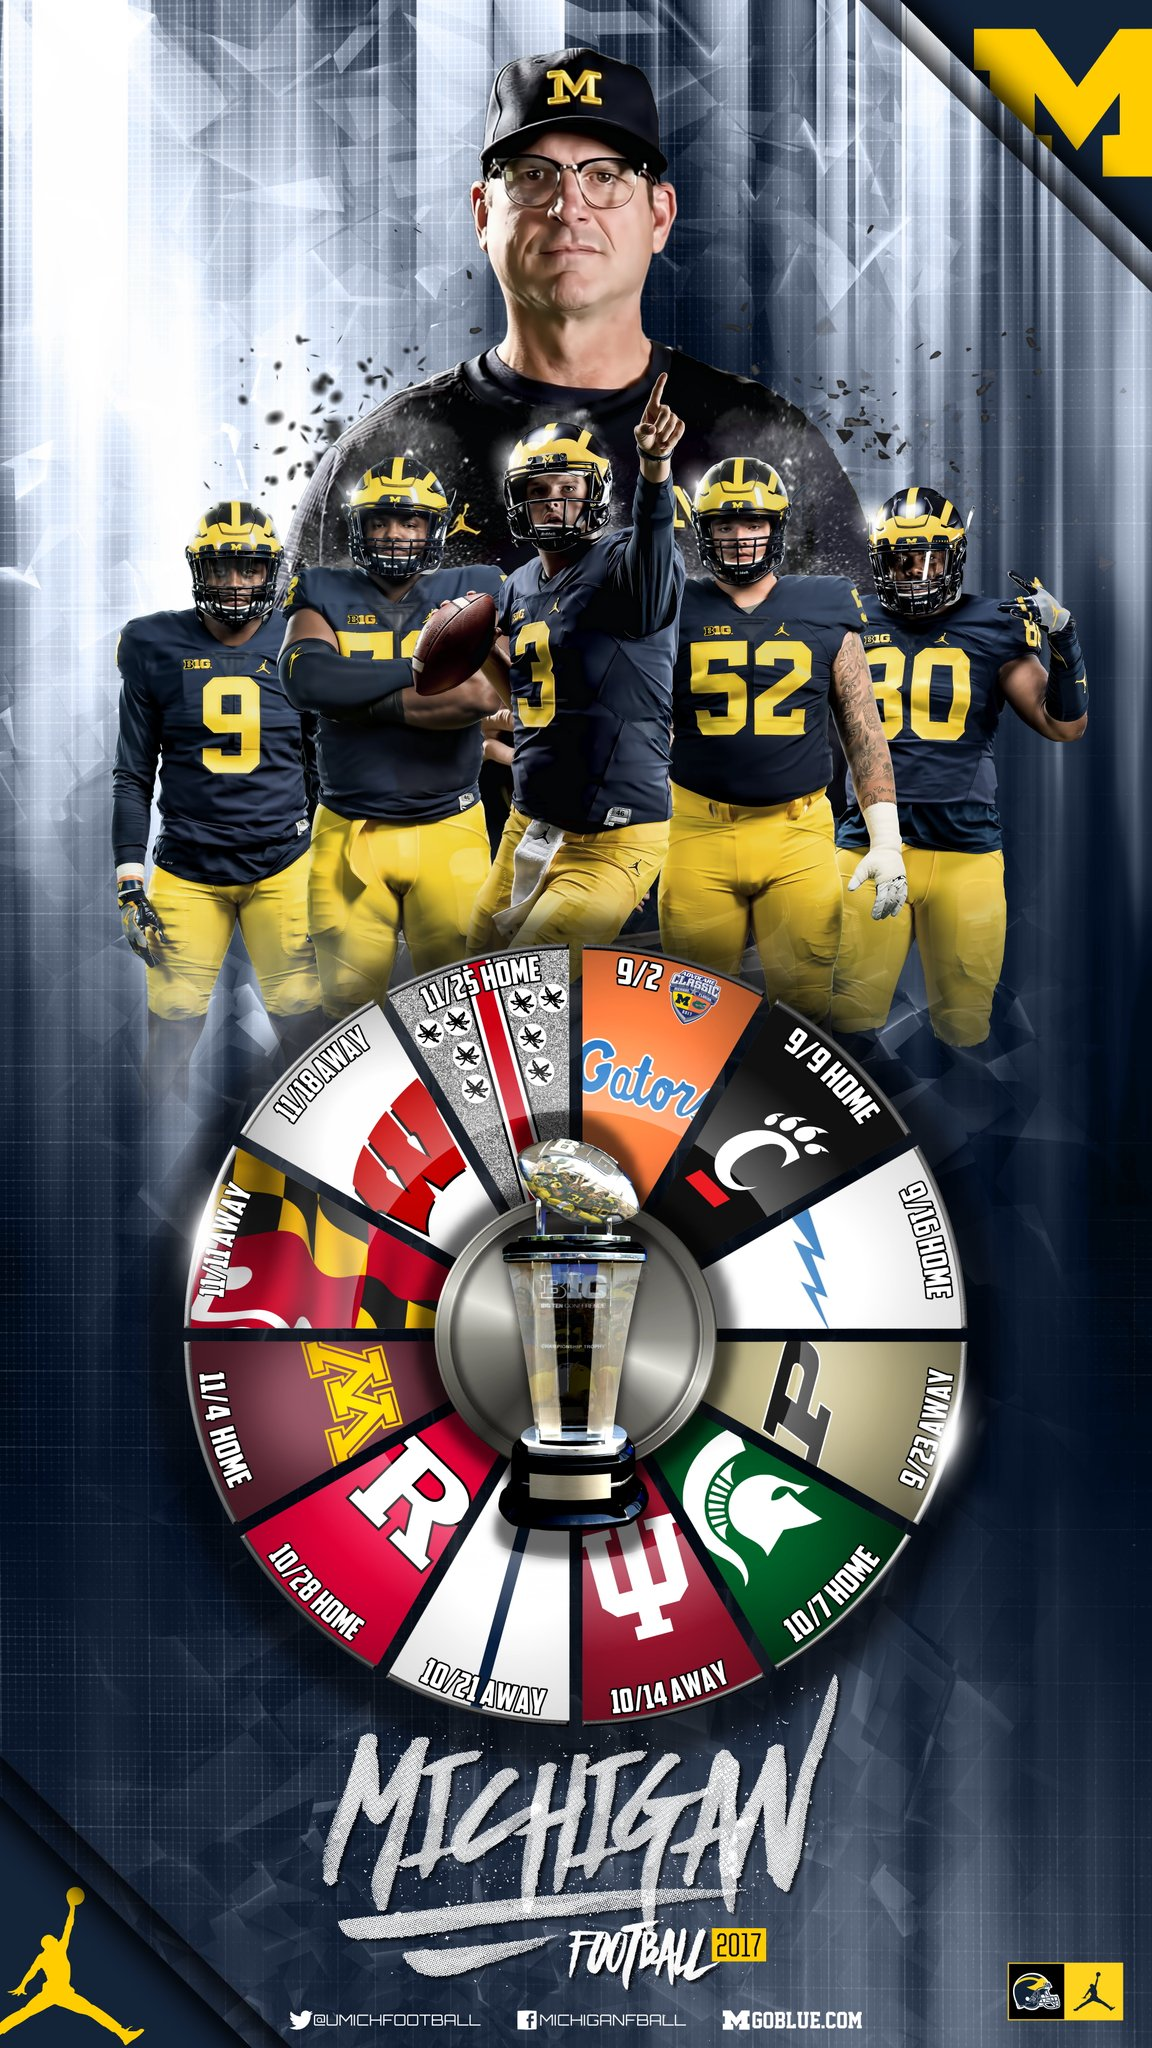 Aaron bills on twitter michigan football 2017 schedule wallpaper i 39 m sure fall can 39 t come - Michigan state football backgrounds ...